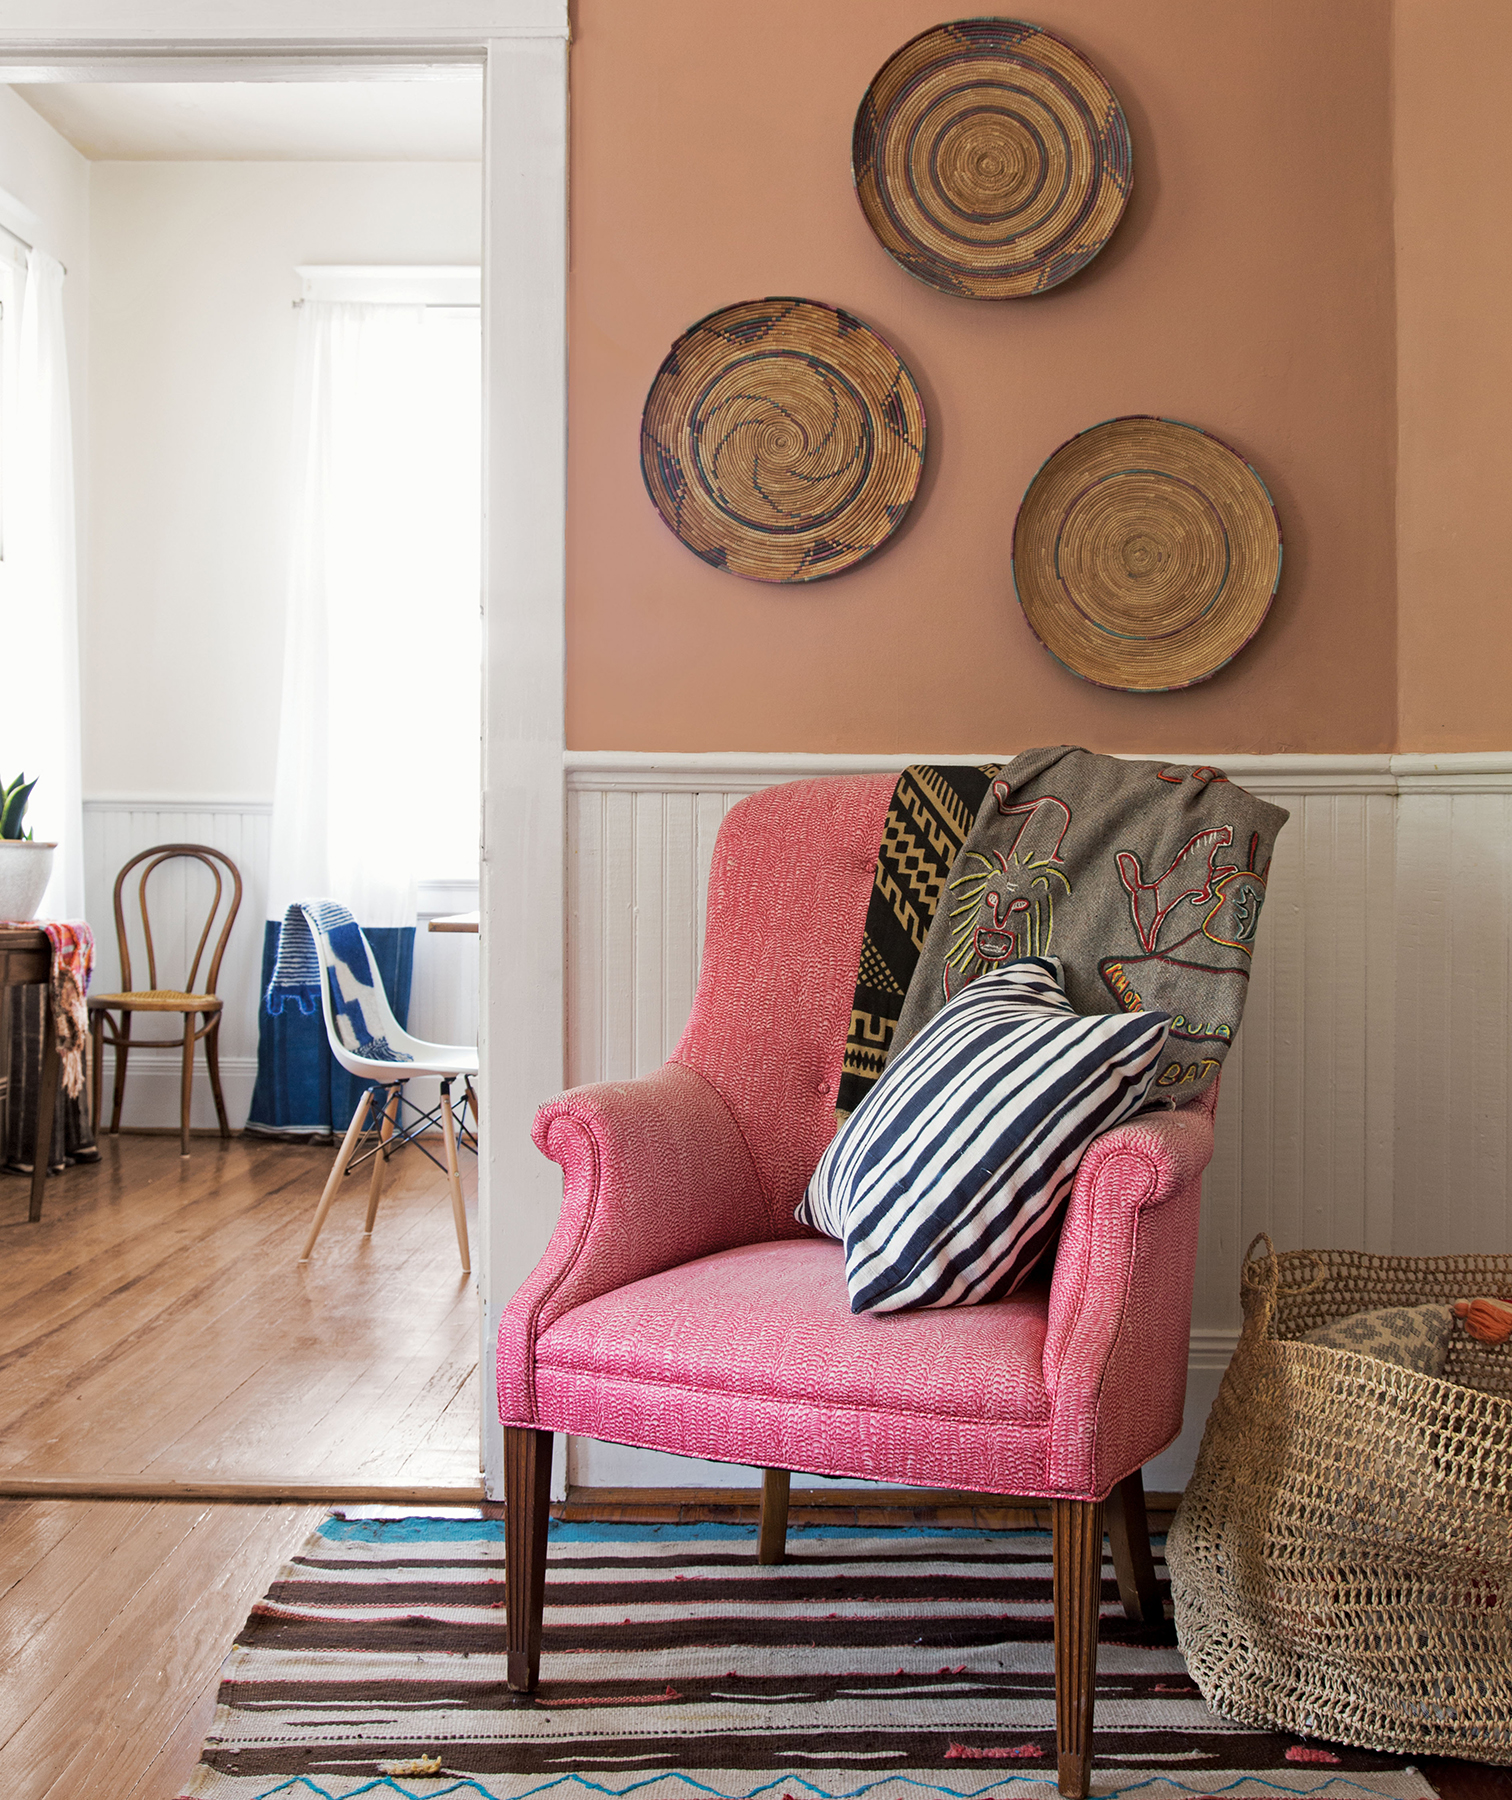 Chair with patterned pillows, throw, rug